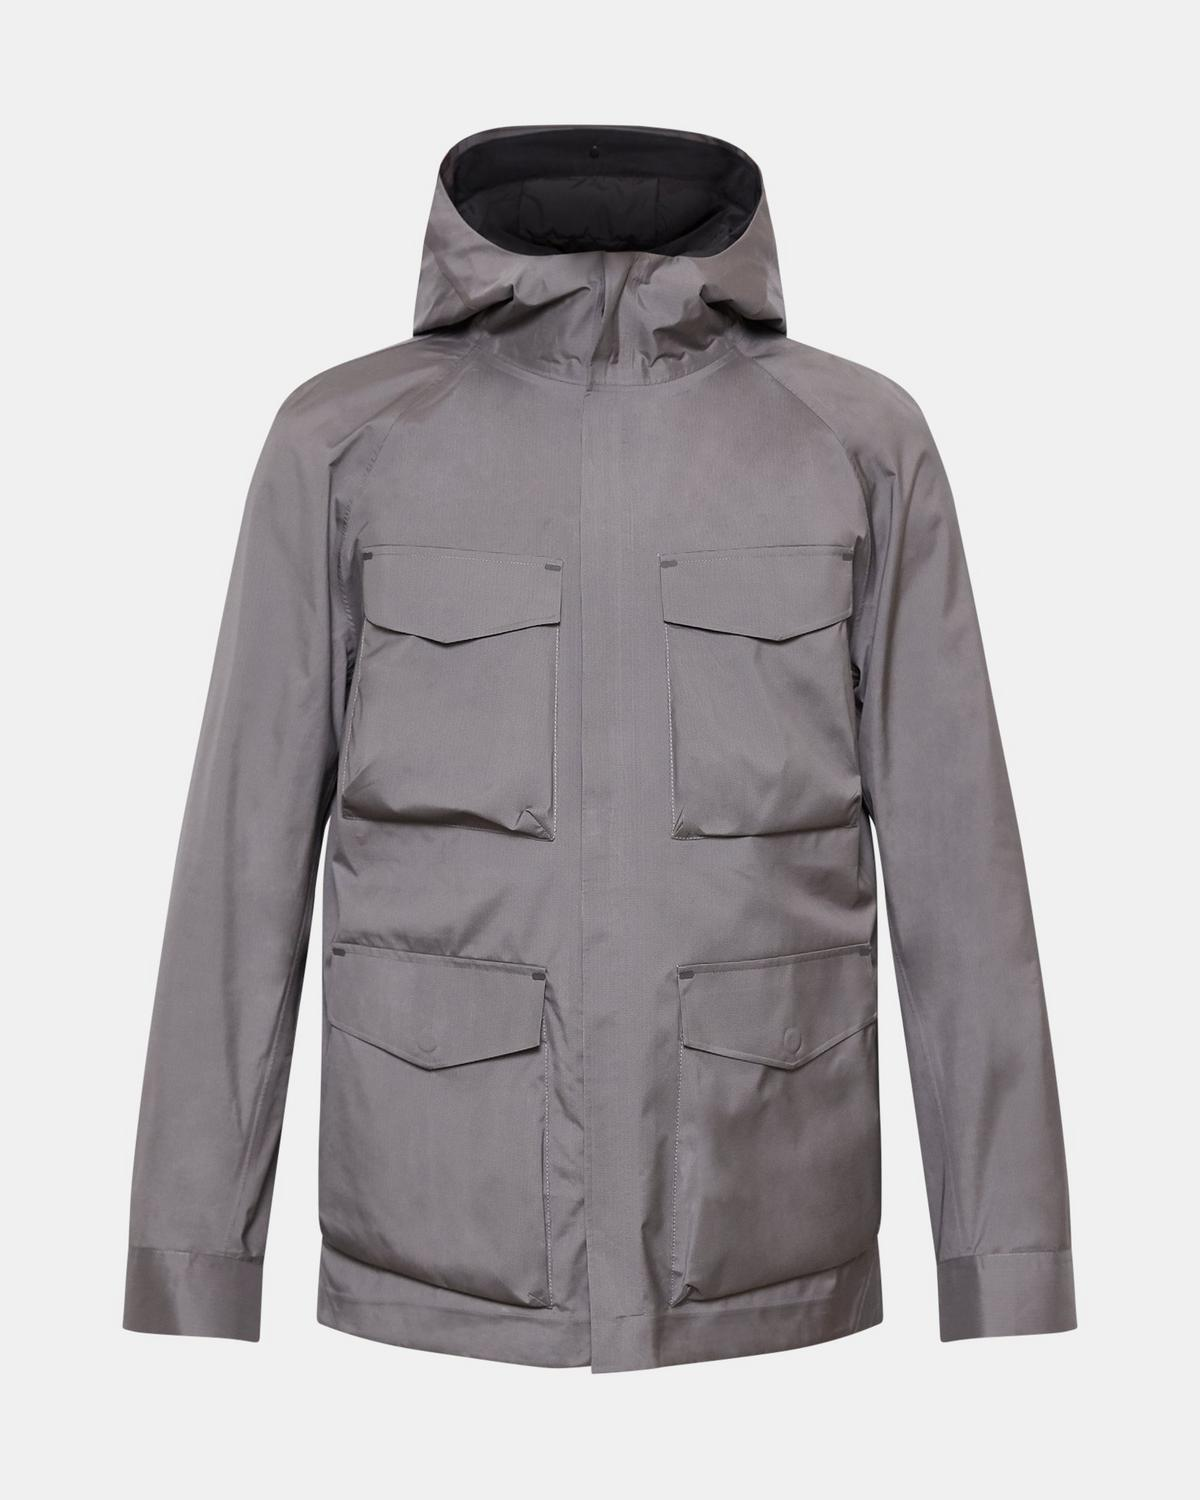 Mr Porter x Theory Finn Jacket with Detachable Liner Vest